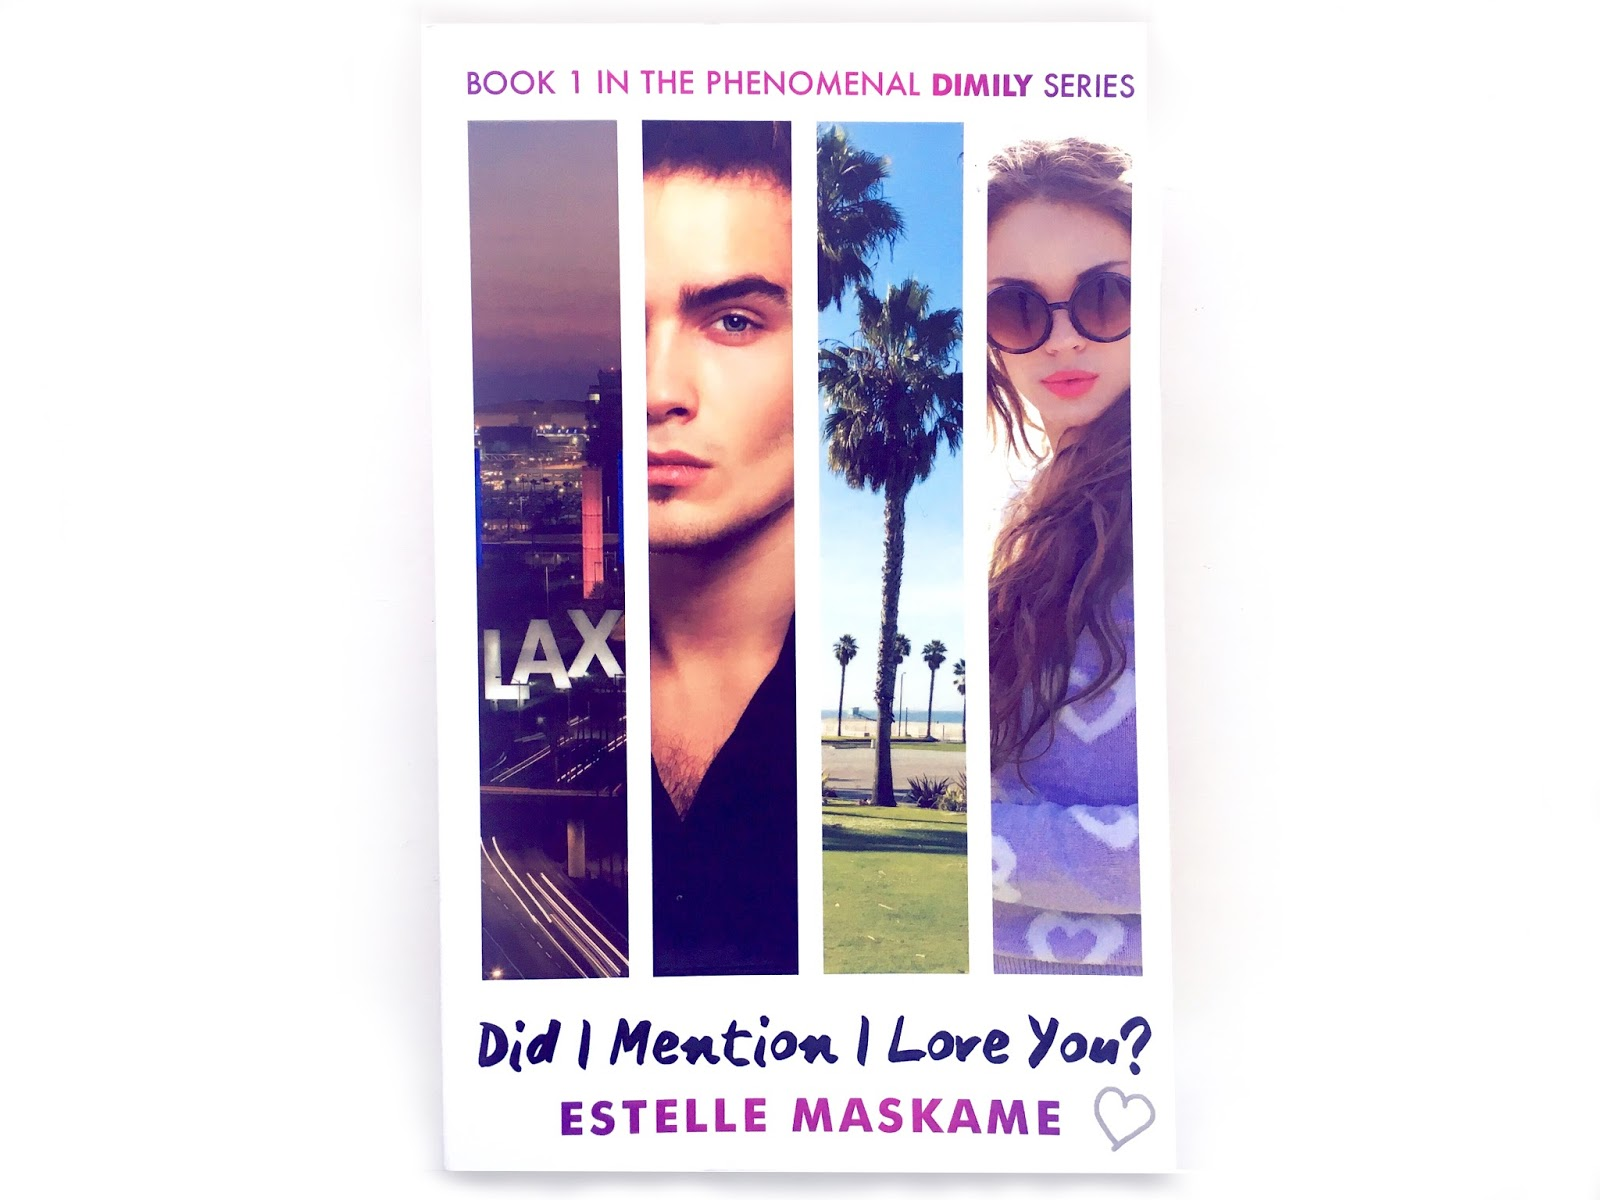 Did I Mention I Love You by Estelle Maskame